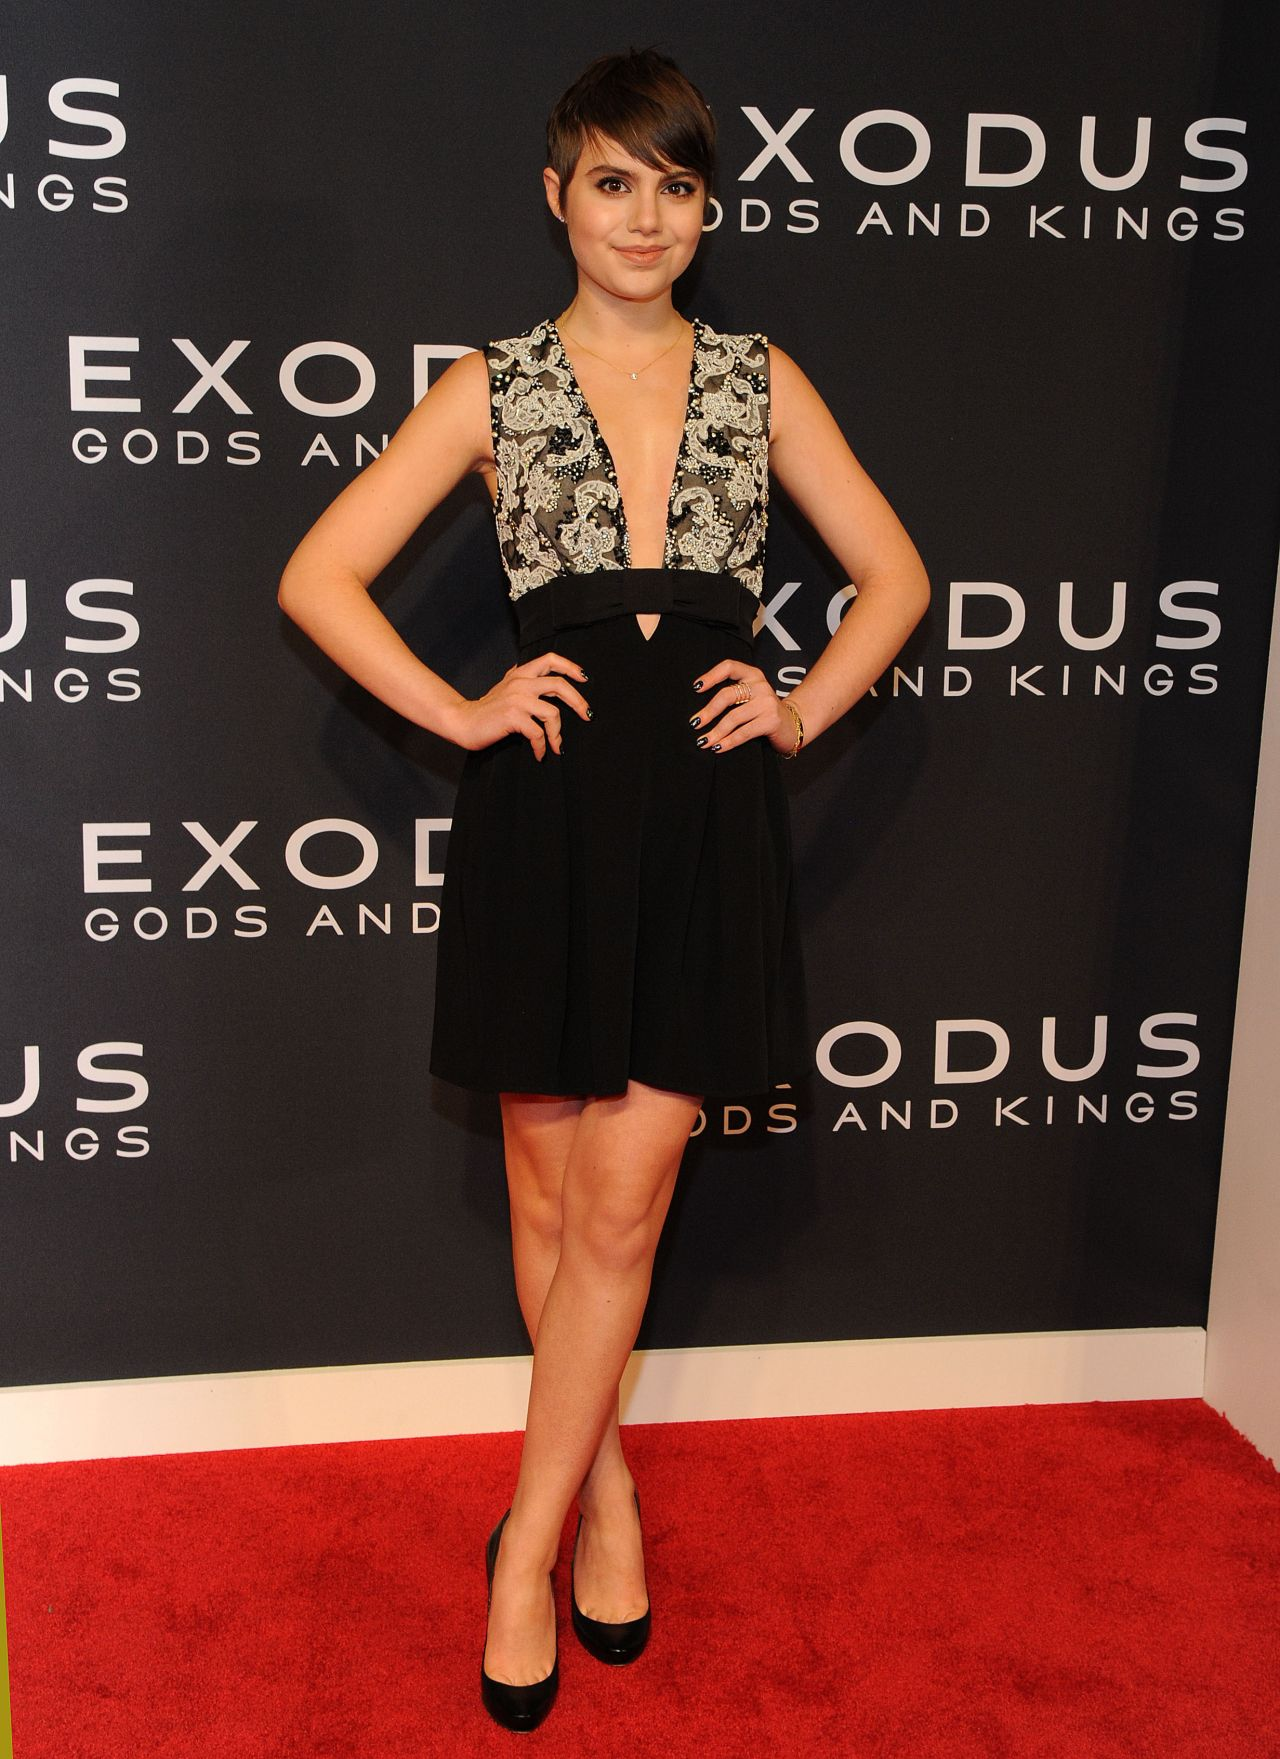 Sami Gayle Exodus Gods And Kings Premiere In New York